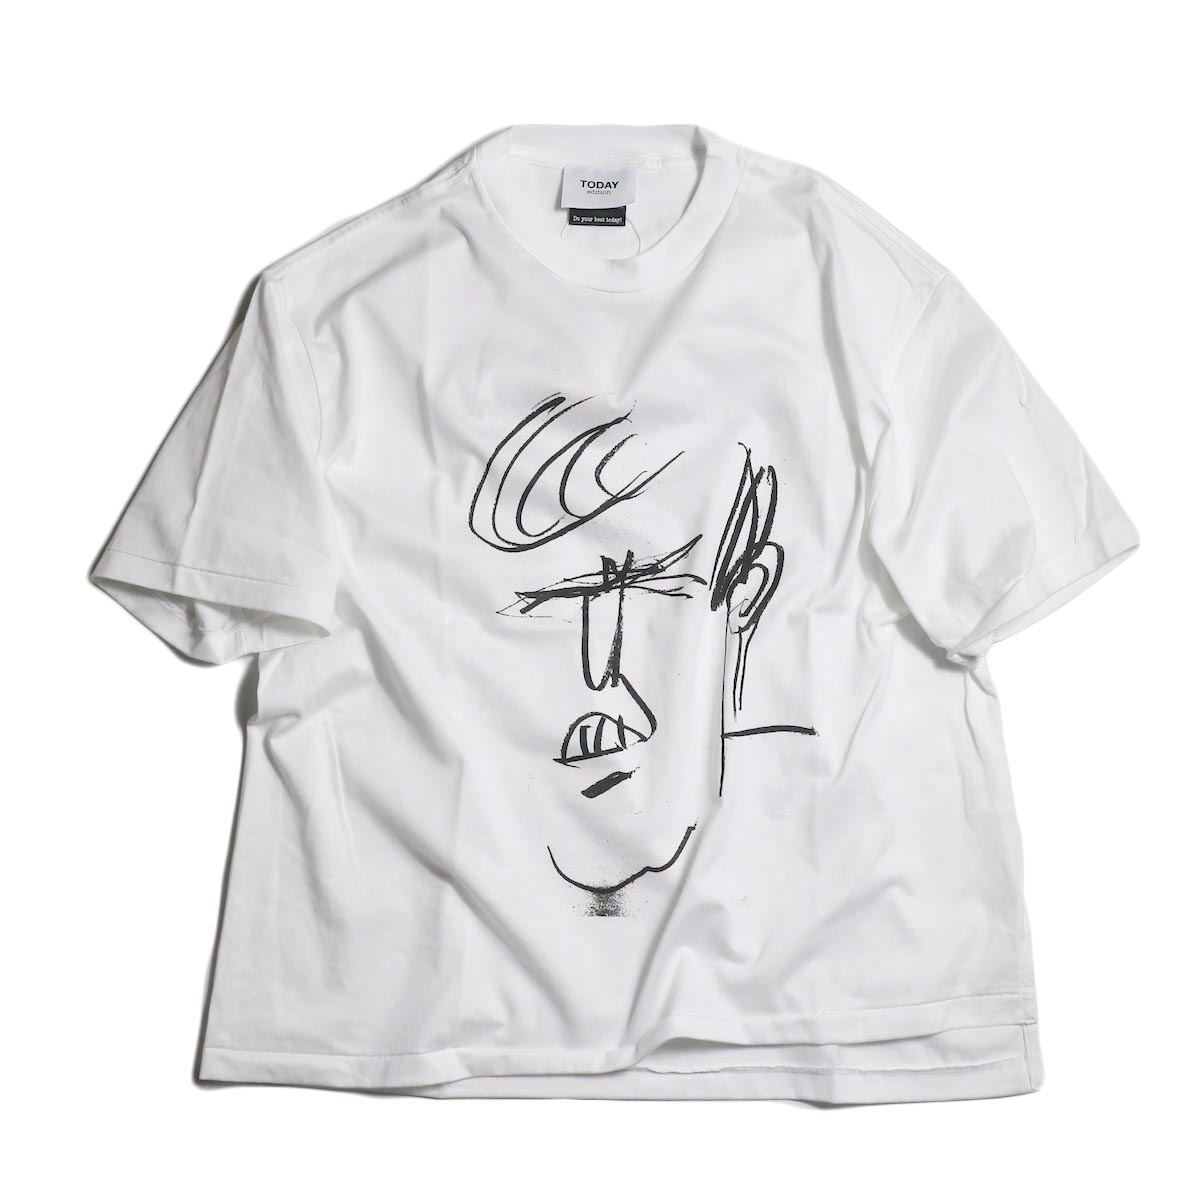 TODAY edition / drawing tee #5 -White